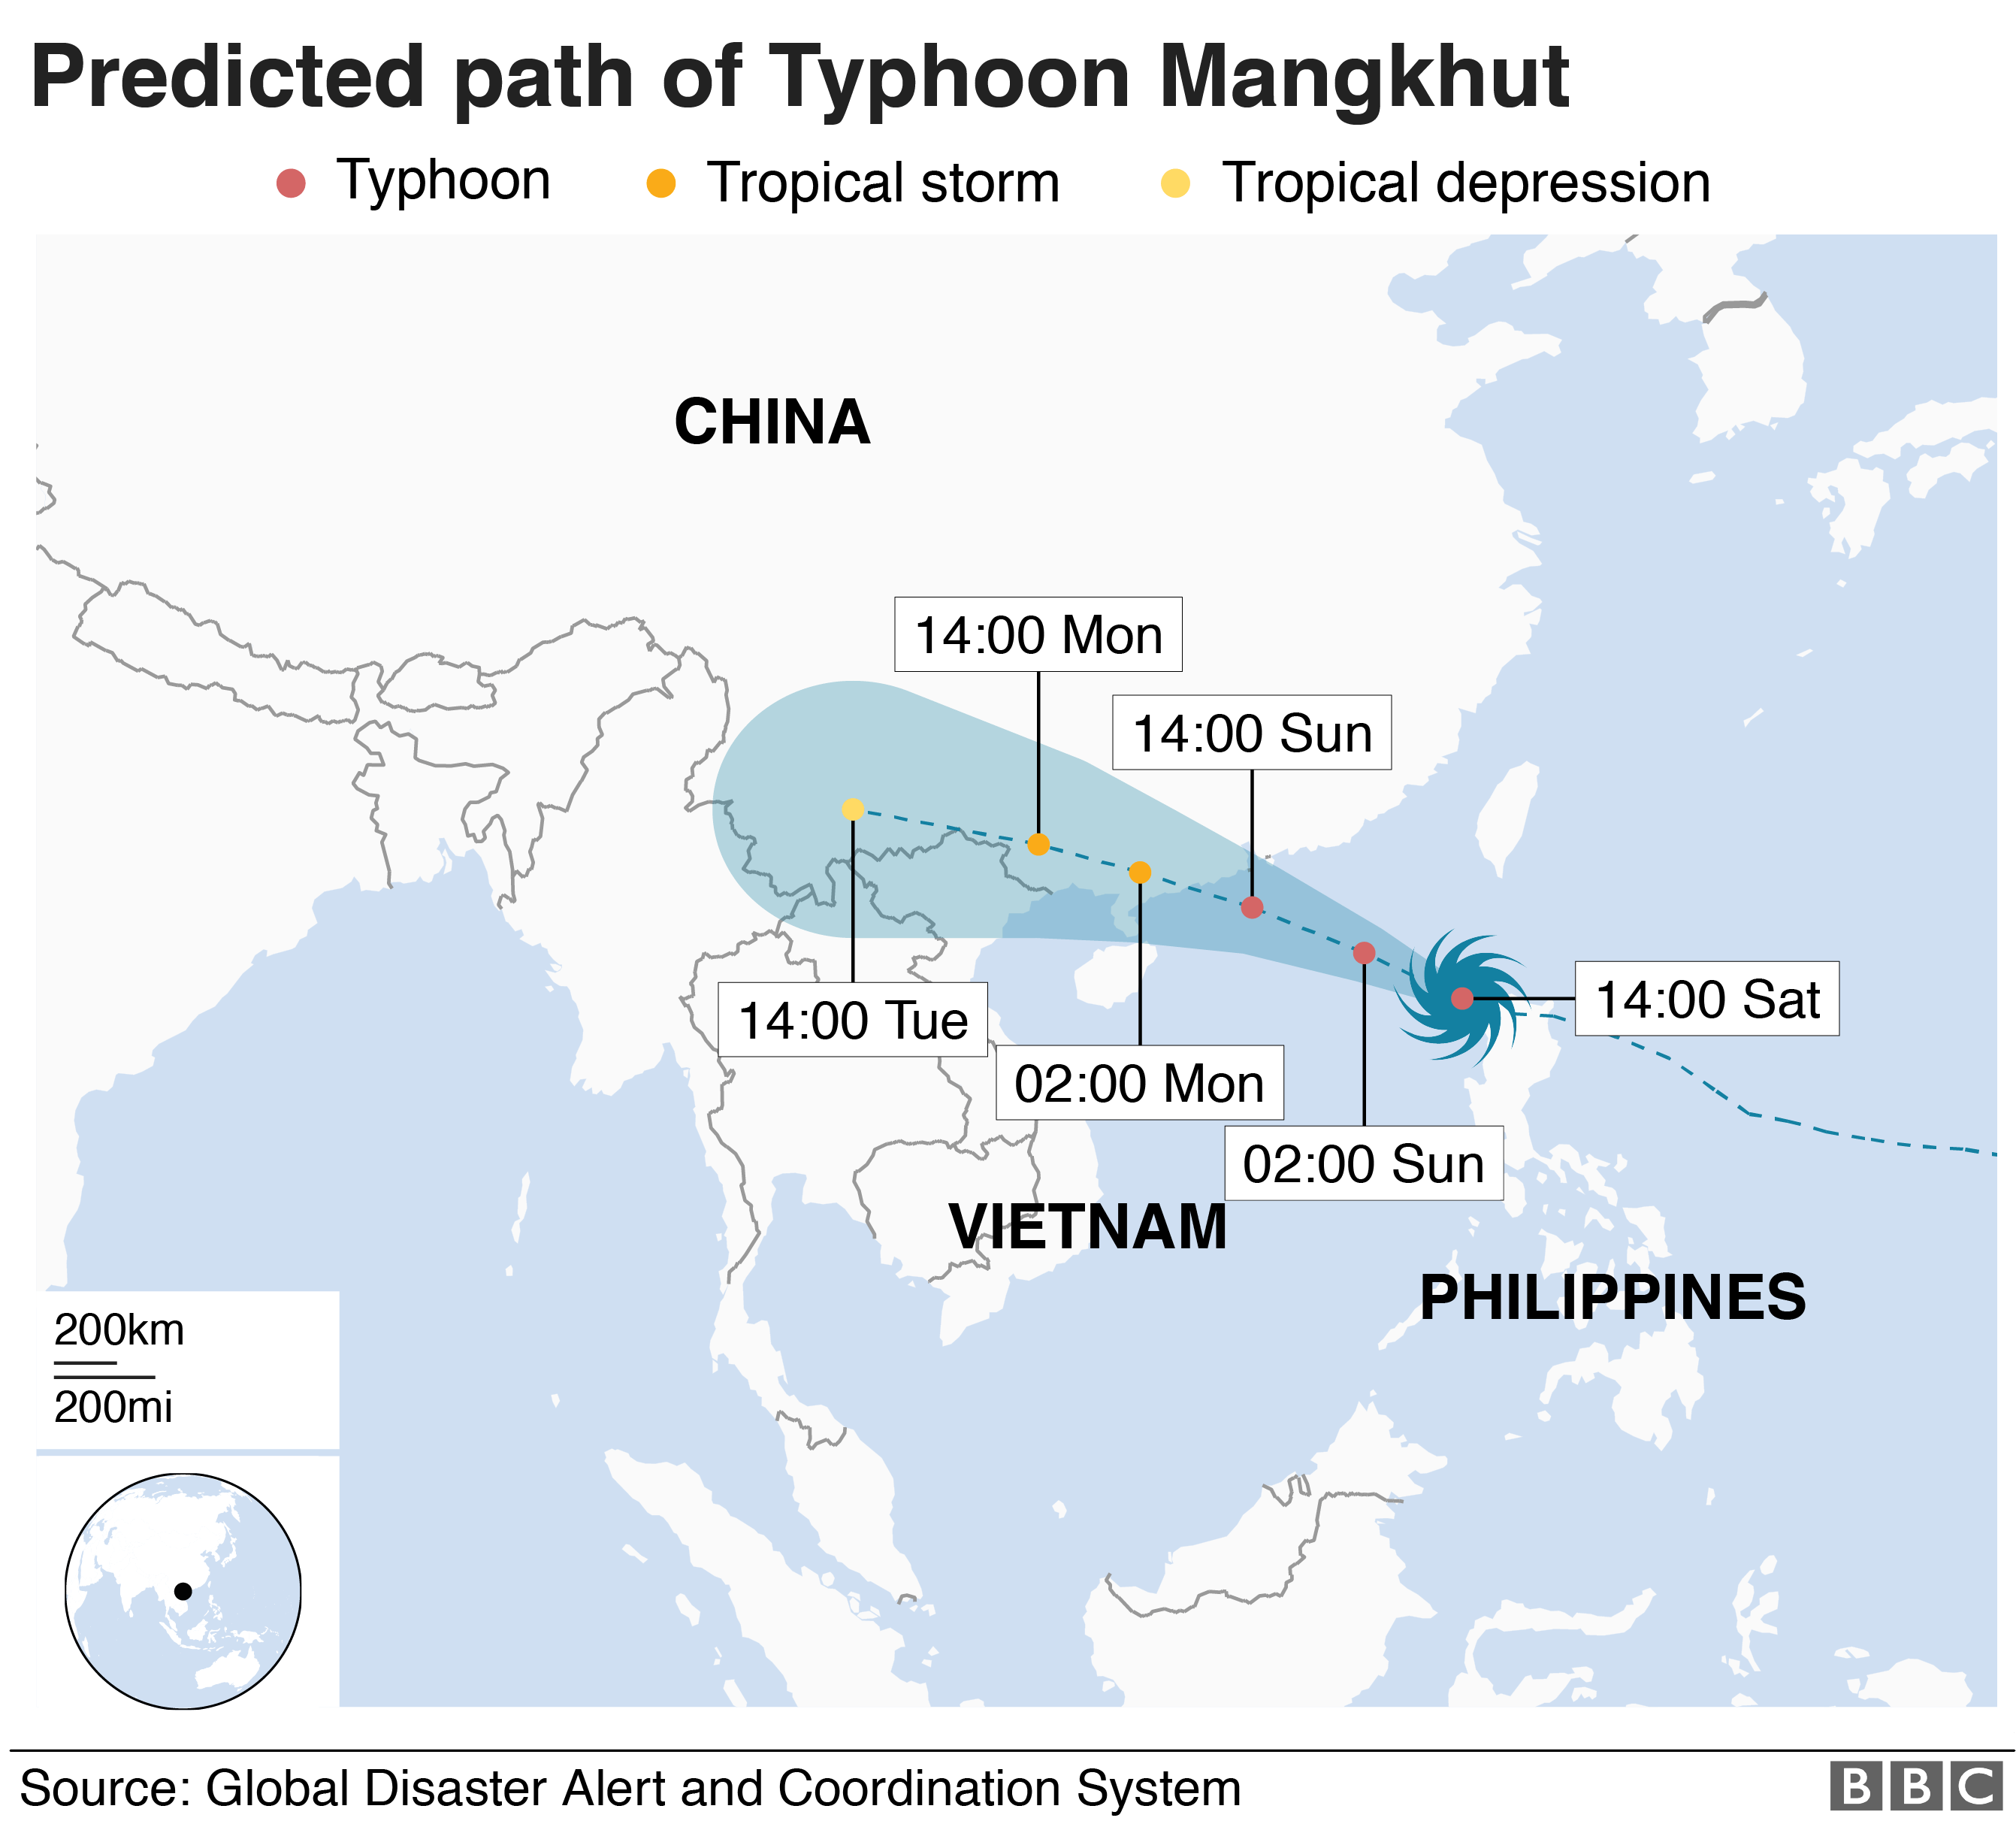 Predict path of Typhoon Mangkhut which will make landfall